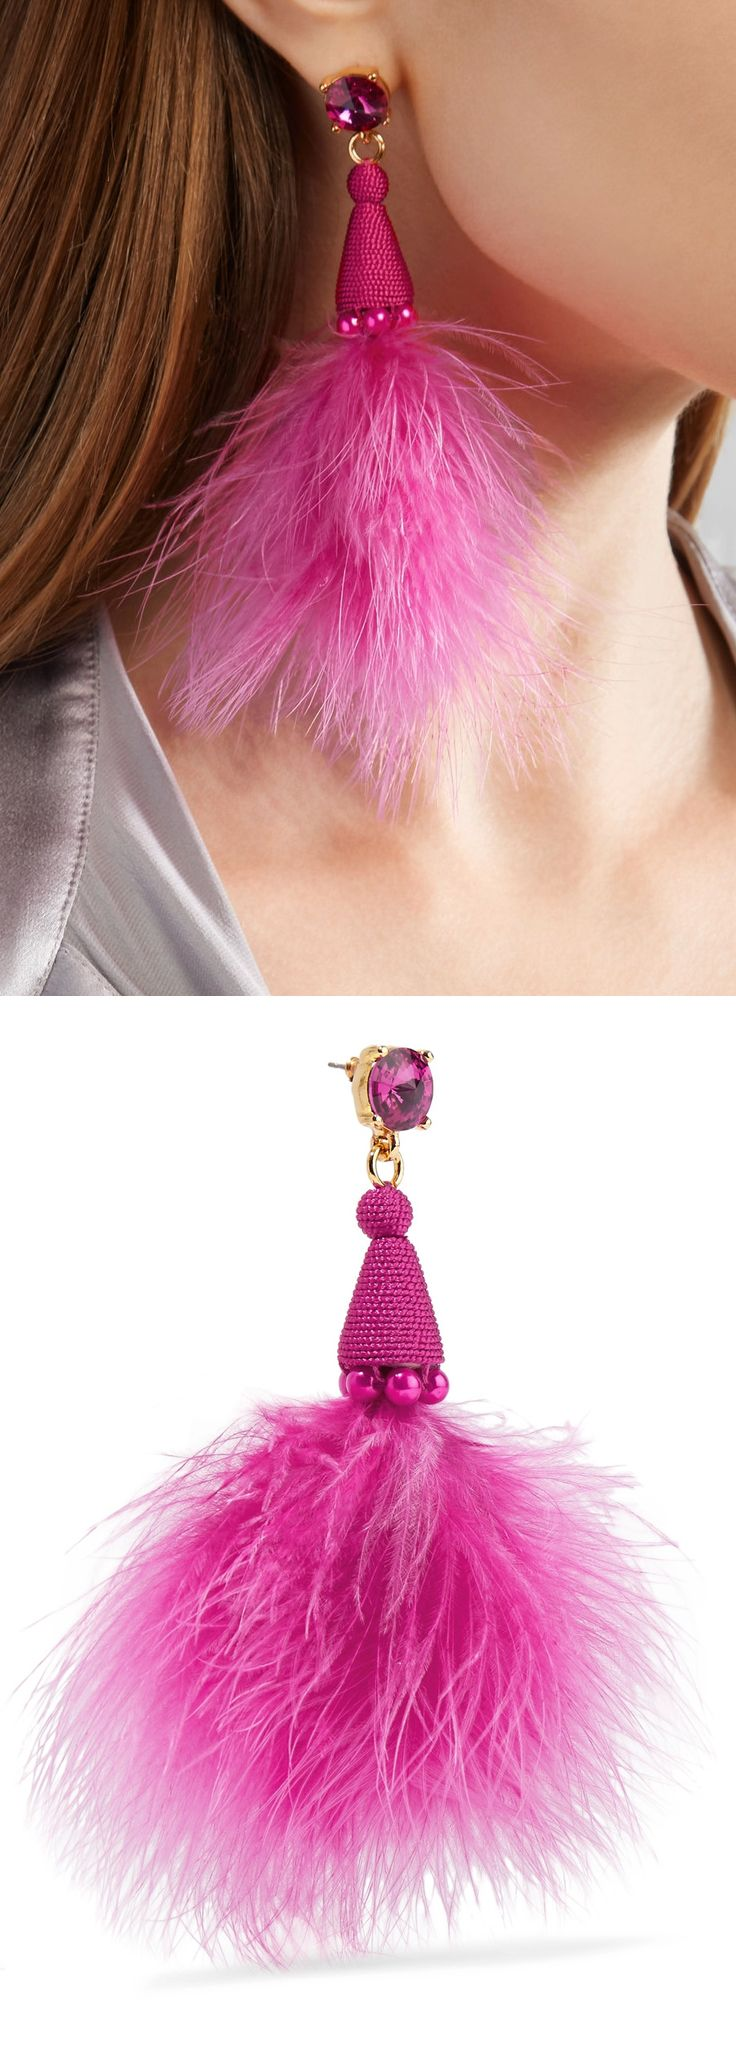 Feather, crystal and bead earrings in hot fuchsia pink. Stork feathers Hang from a sparkling crystal stud, braided cone and beads, all in a bold fuchsia hue. They're trimmed with fluffy feathers that just graze your shoulders. Sweep you hair back to keep them in focus. Tassel earring, on trend aw17 party fashion. #valentinesday #christmaspresents #giftsforher #tassels #tasselearrings #underthetree #valentinesgifts #affiliatelink #jewelery #fashion #ontrend #fashionista